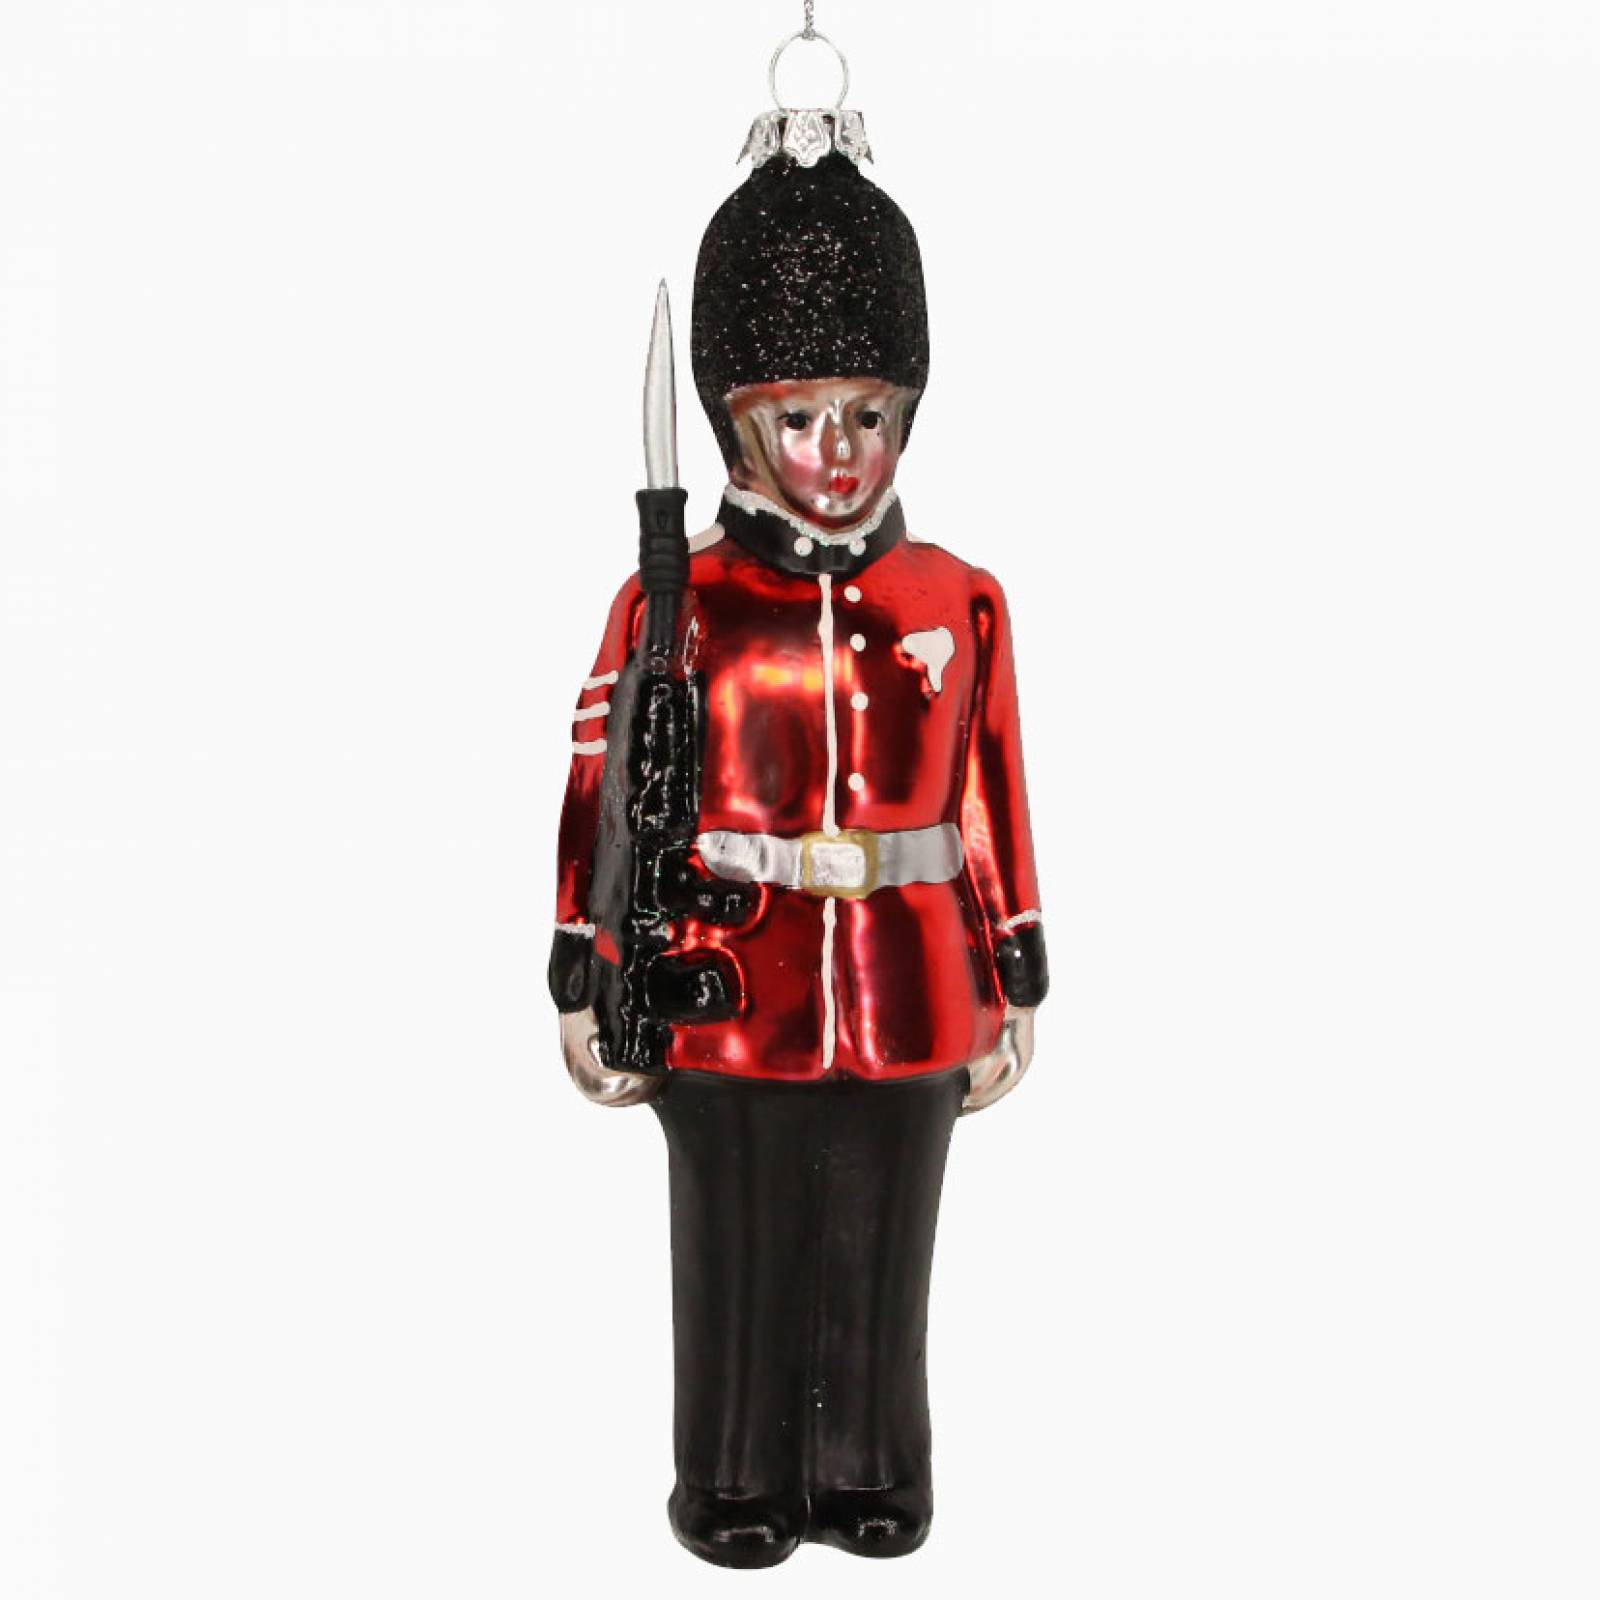 Painted Glass Soldier Christmas Decoration